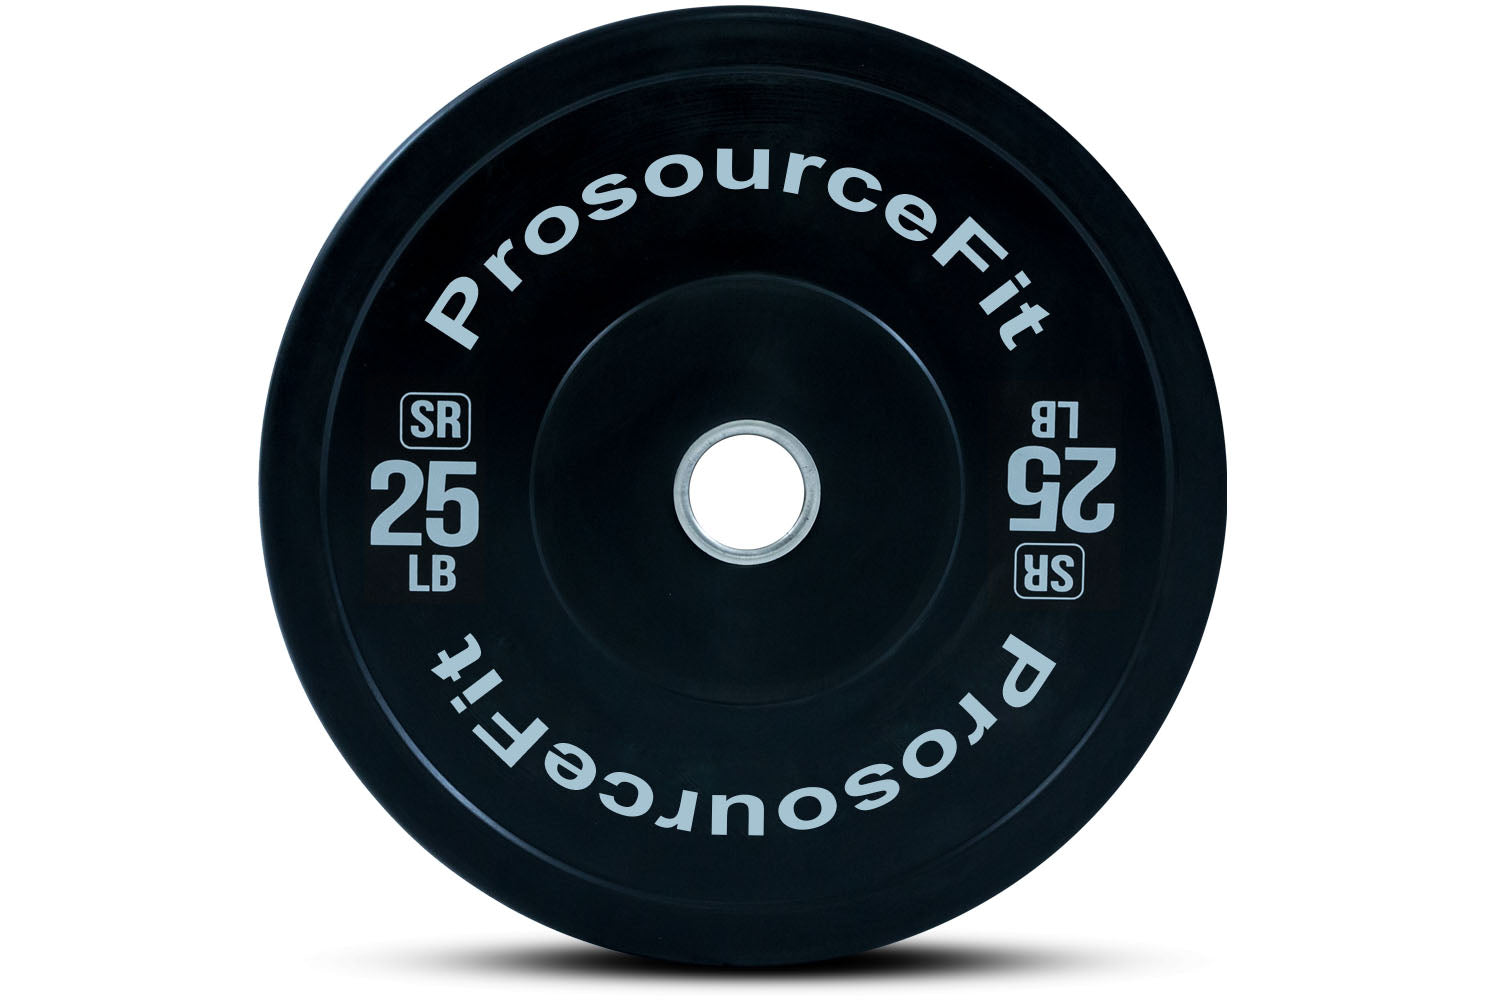 25 lb SR Bumper Plates (Set of 2)